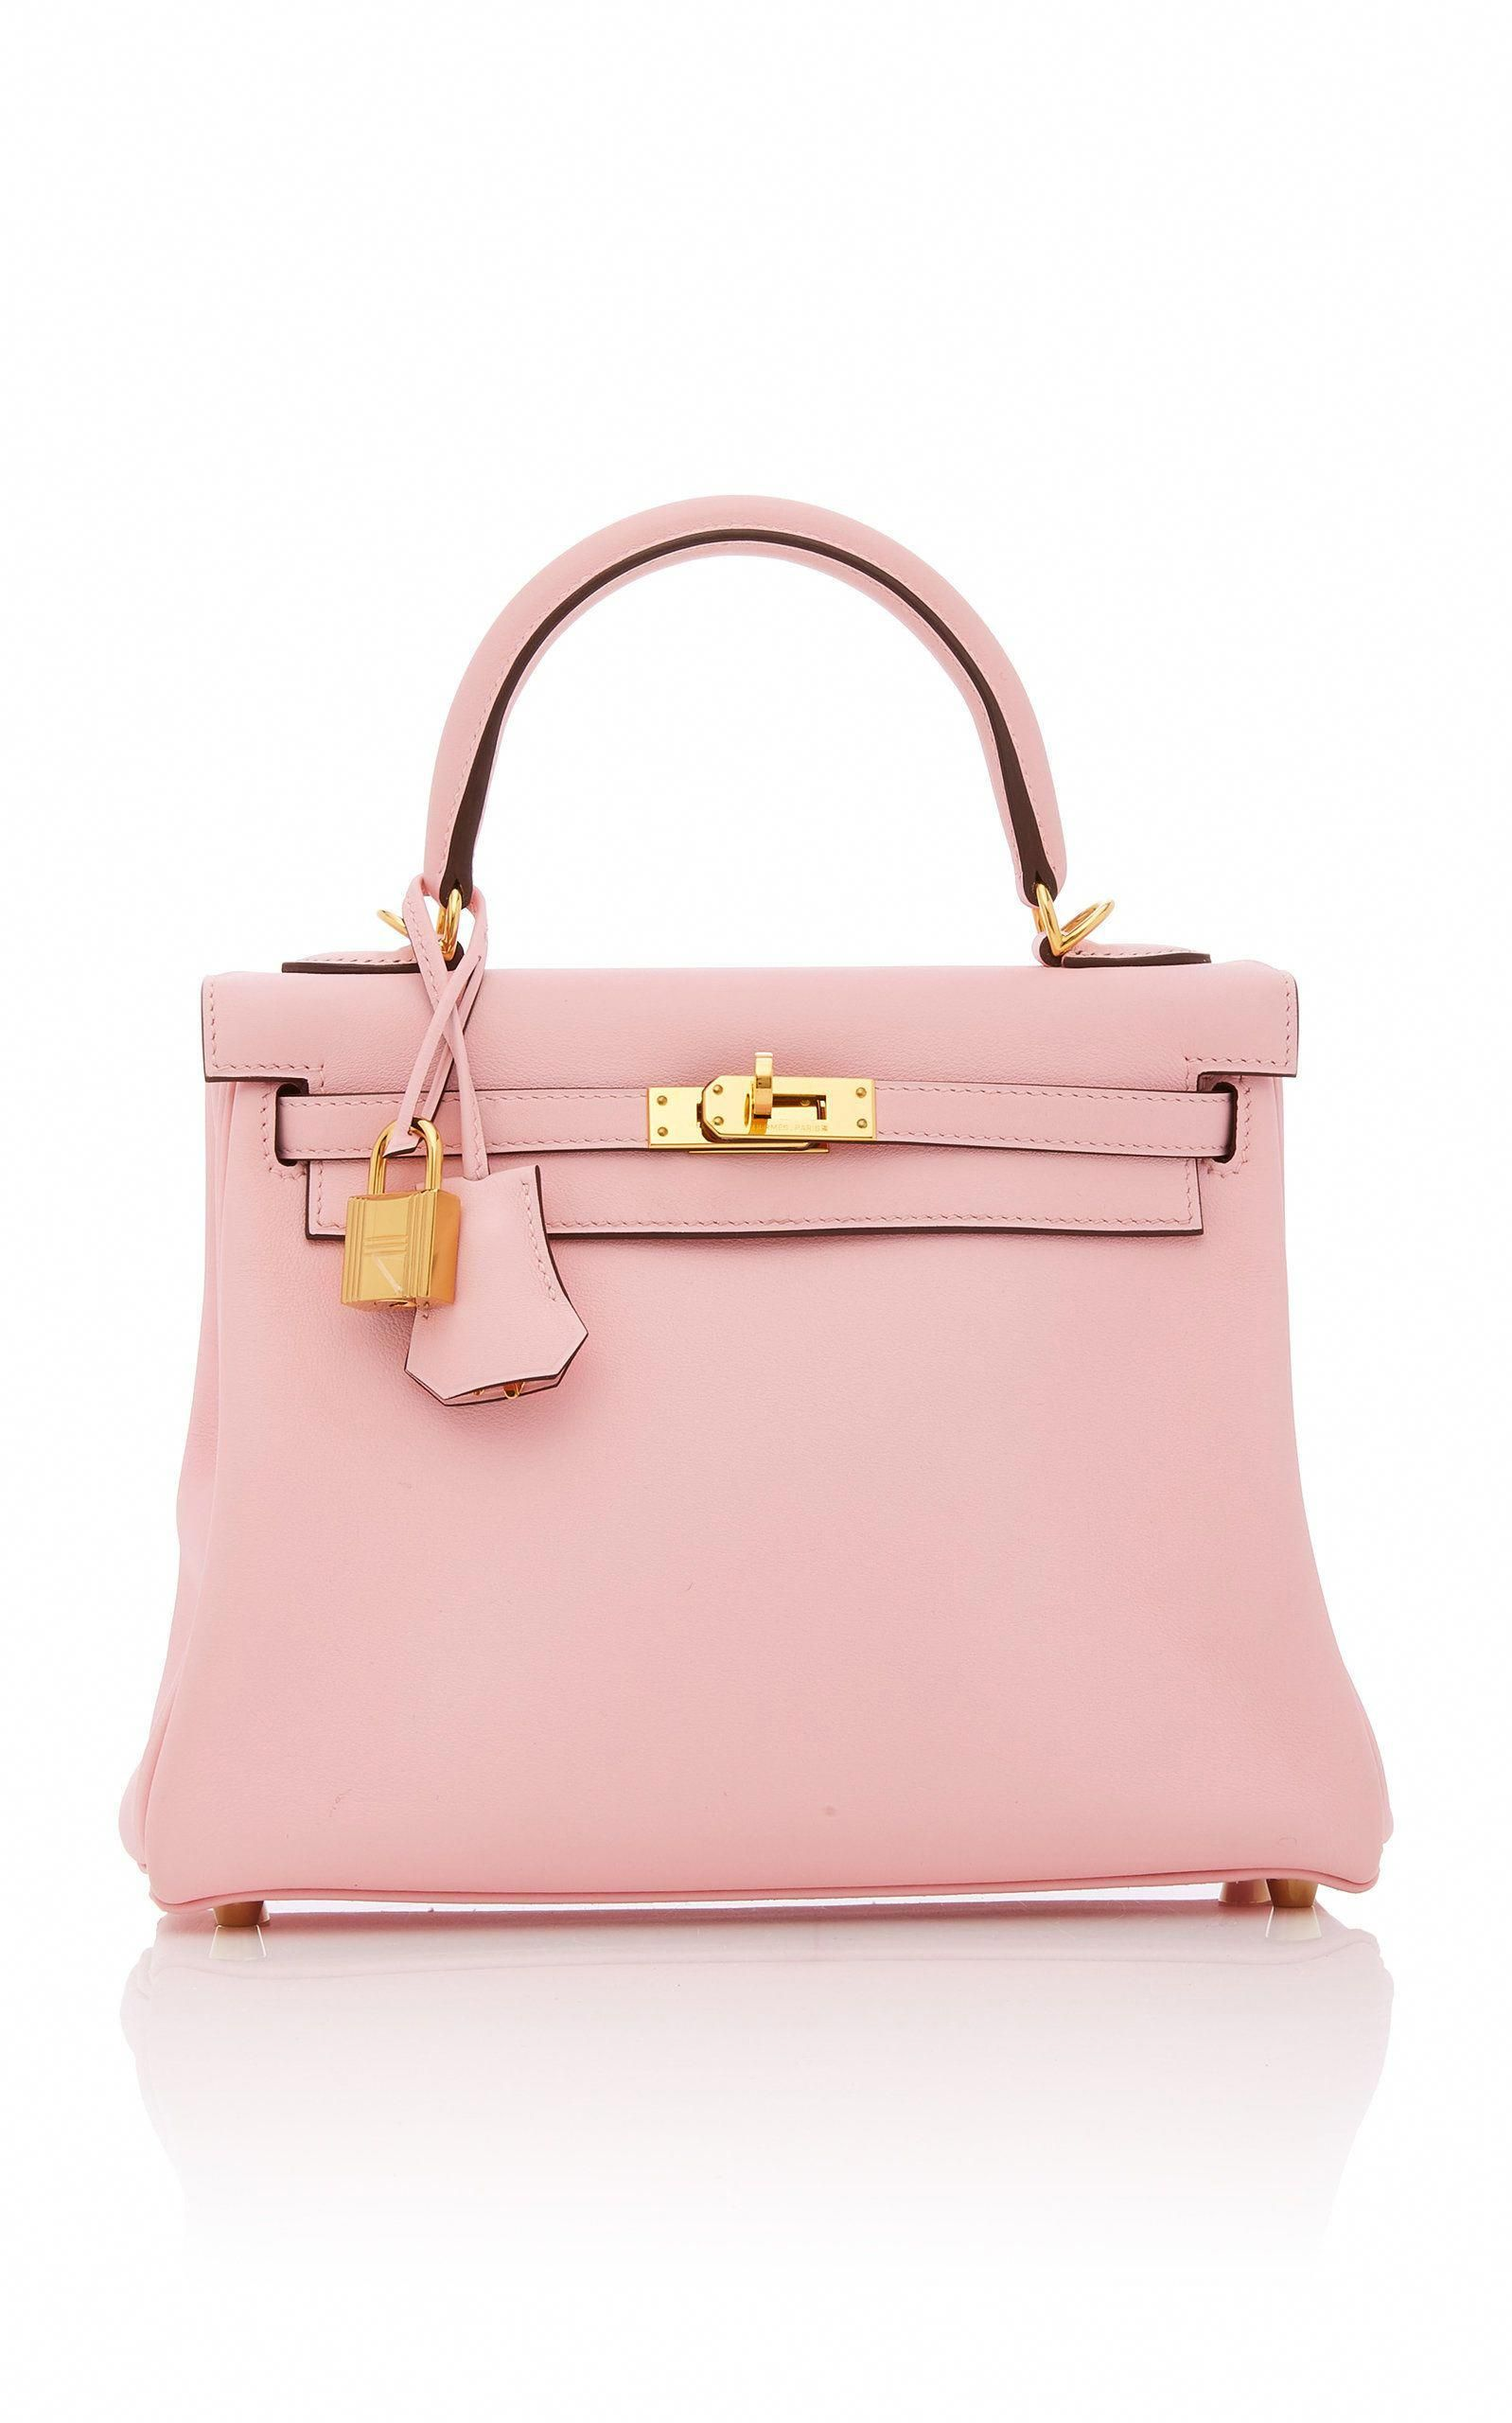 ac26963b49 HERITAGE AUCTIONS SPECIAL COLLECTIONS Hermès 25Cm Rose Sakura Swift Kelly  in Pink  Pradahandbags